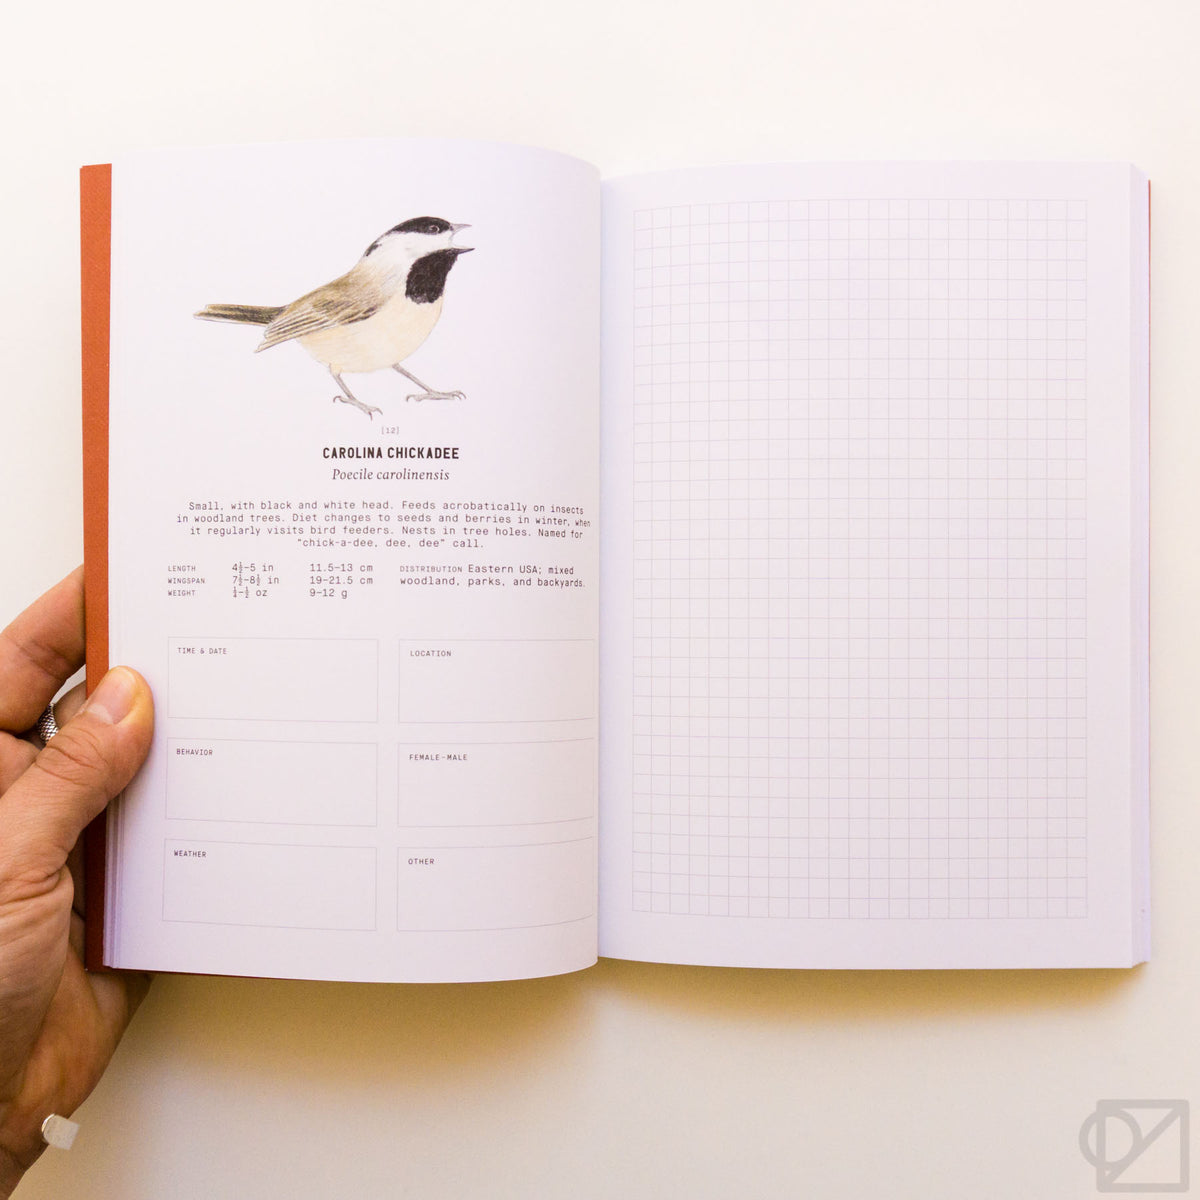 Backyard Birds: An Urban Birdwatching Logbook